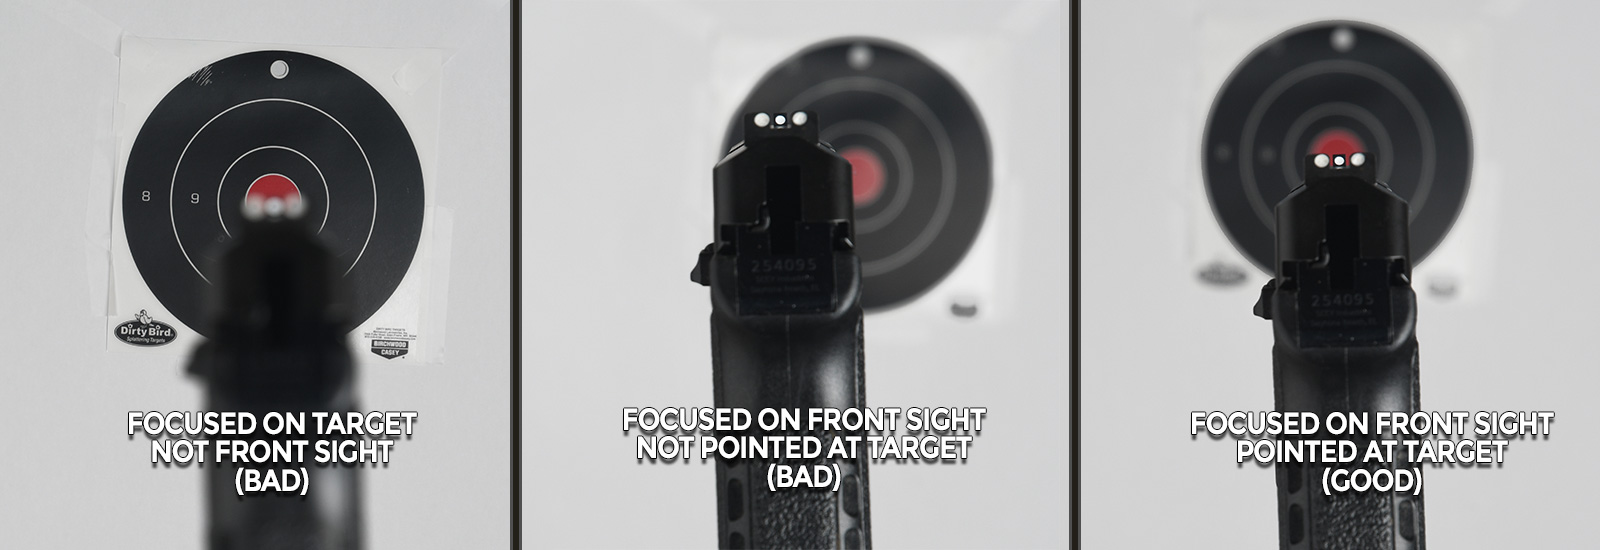 Sight Picture Issues with Aiming a Pistol